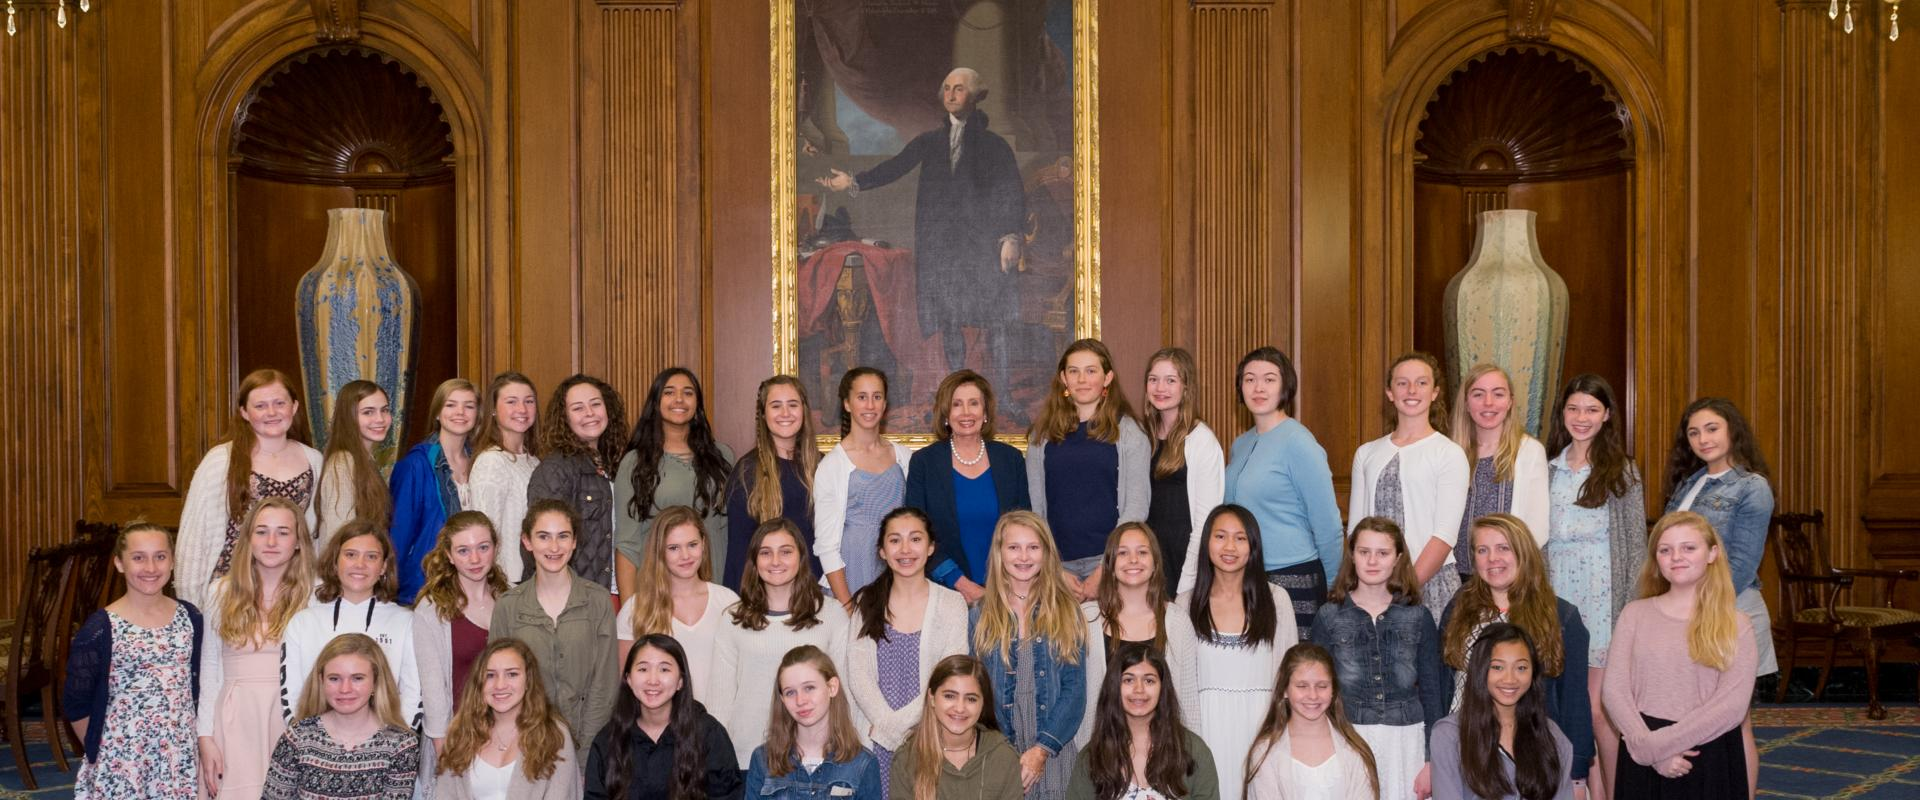 Congresswoman Nancy Pelosi meets with 8th grade students from Convent of the Sacred Heart Elementary School. Pelosi's four daughters are Sacred Heart alumnae.